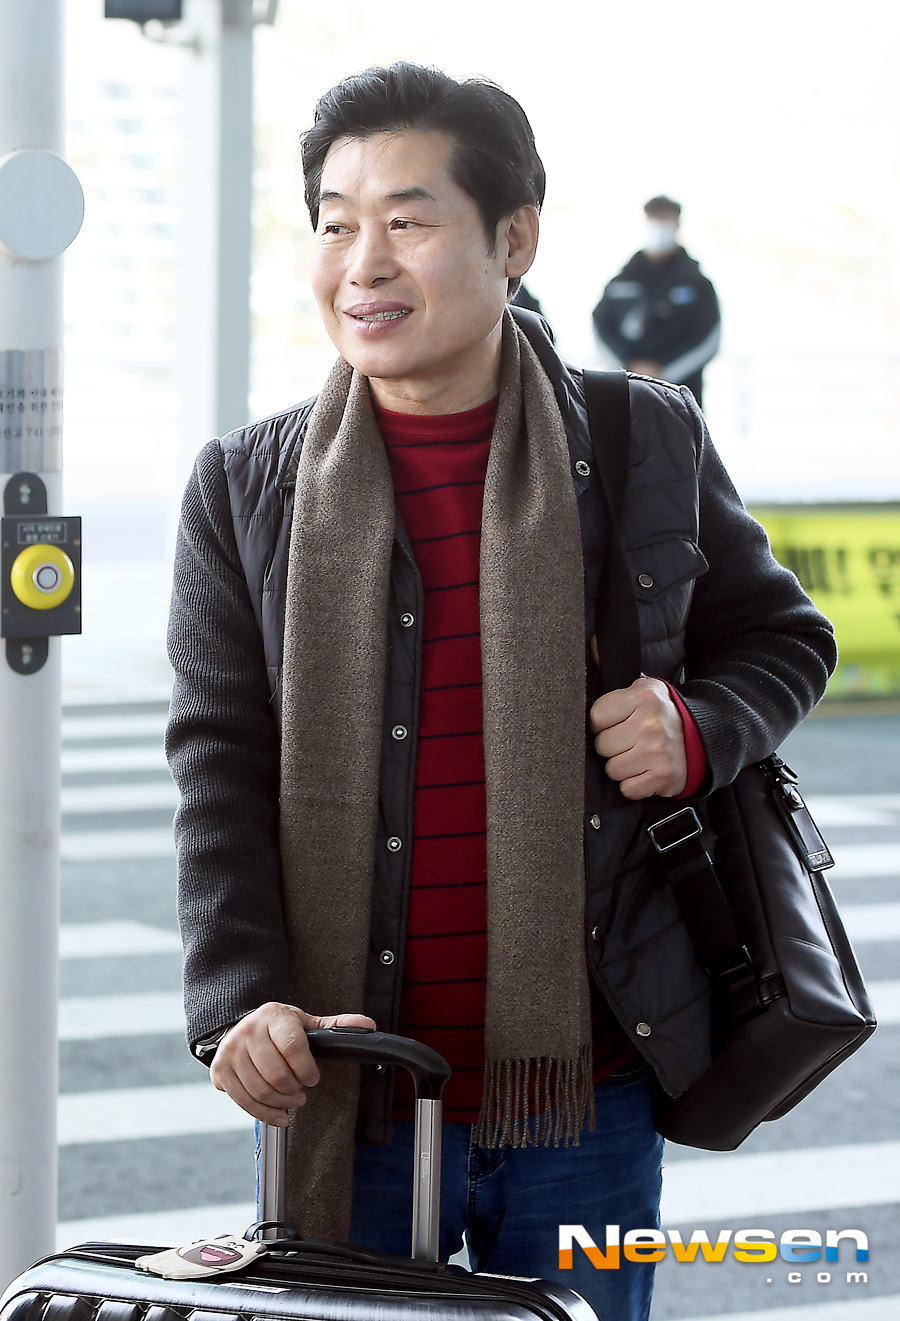 <p>Lee Yeon-bok chefs from local food Hill near the 3 shooting car 3 month 3 days afternoon Incheon International Airport to the United States through San Francisco on departure.</p><p>This day, Lee Yeon-bok chef departures.</p>